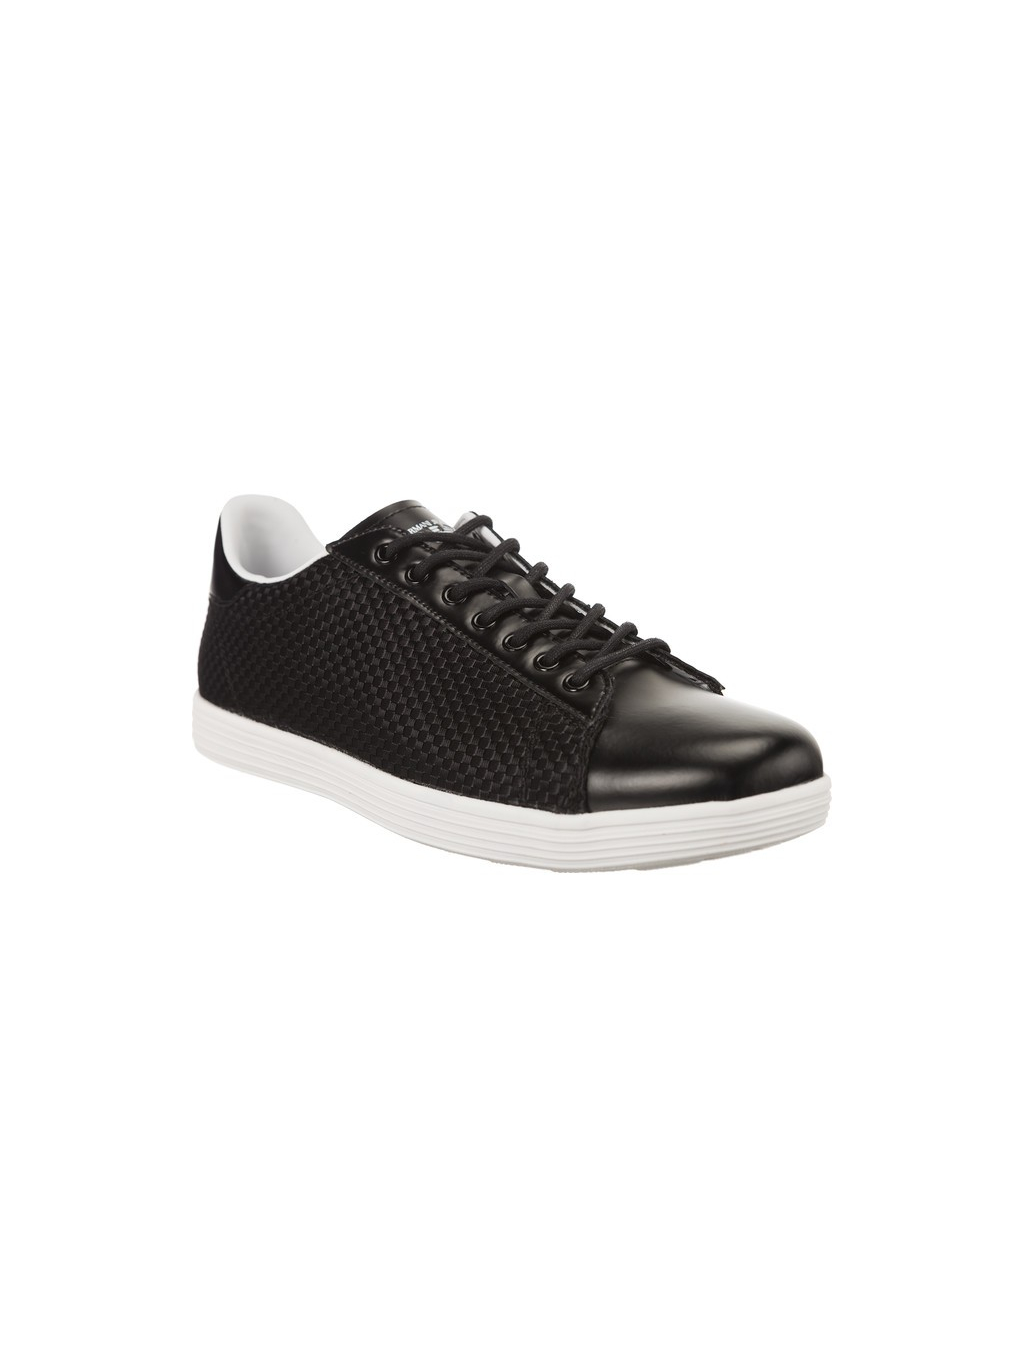 51c3f2f74c6d Luxusné topánky Armani Jeans Sneaker Nero Made in Italy